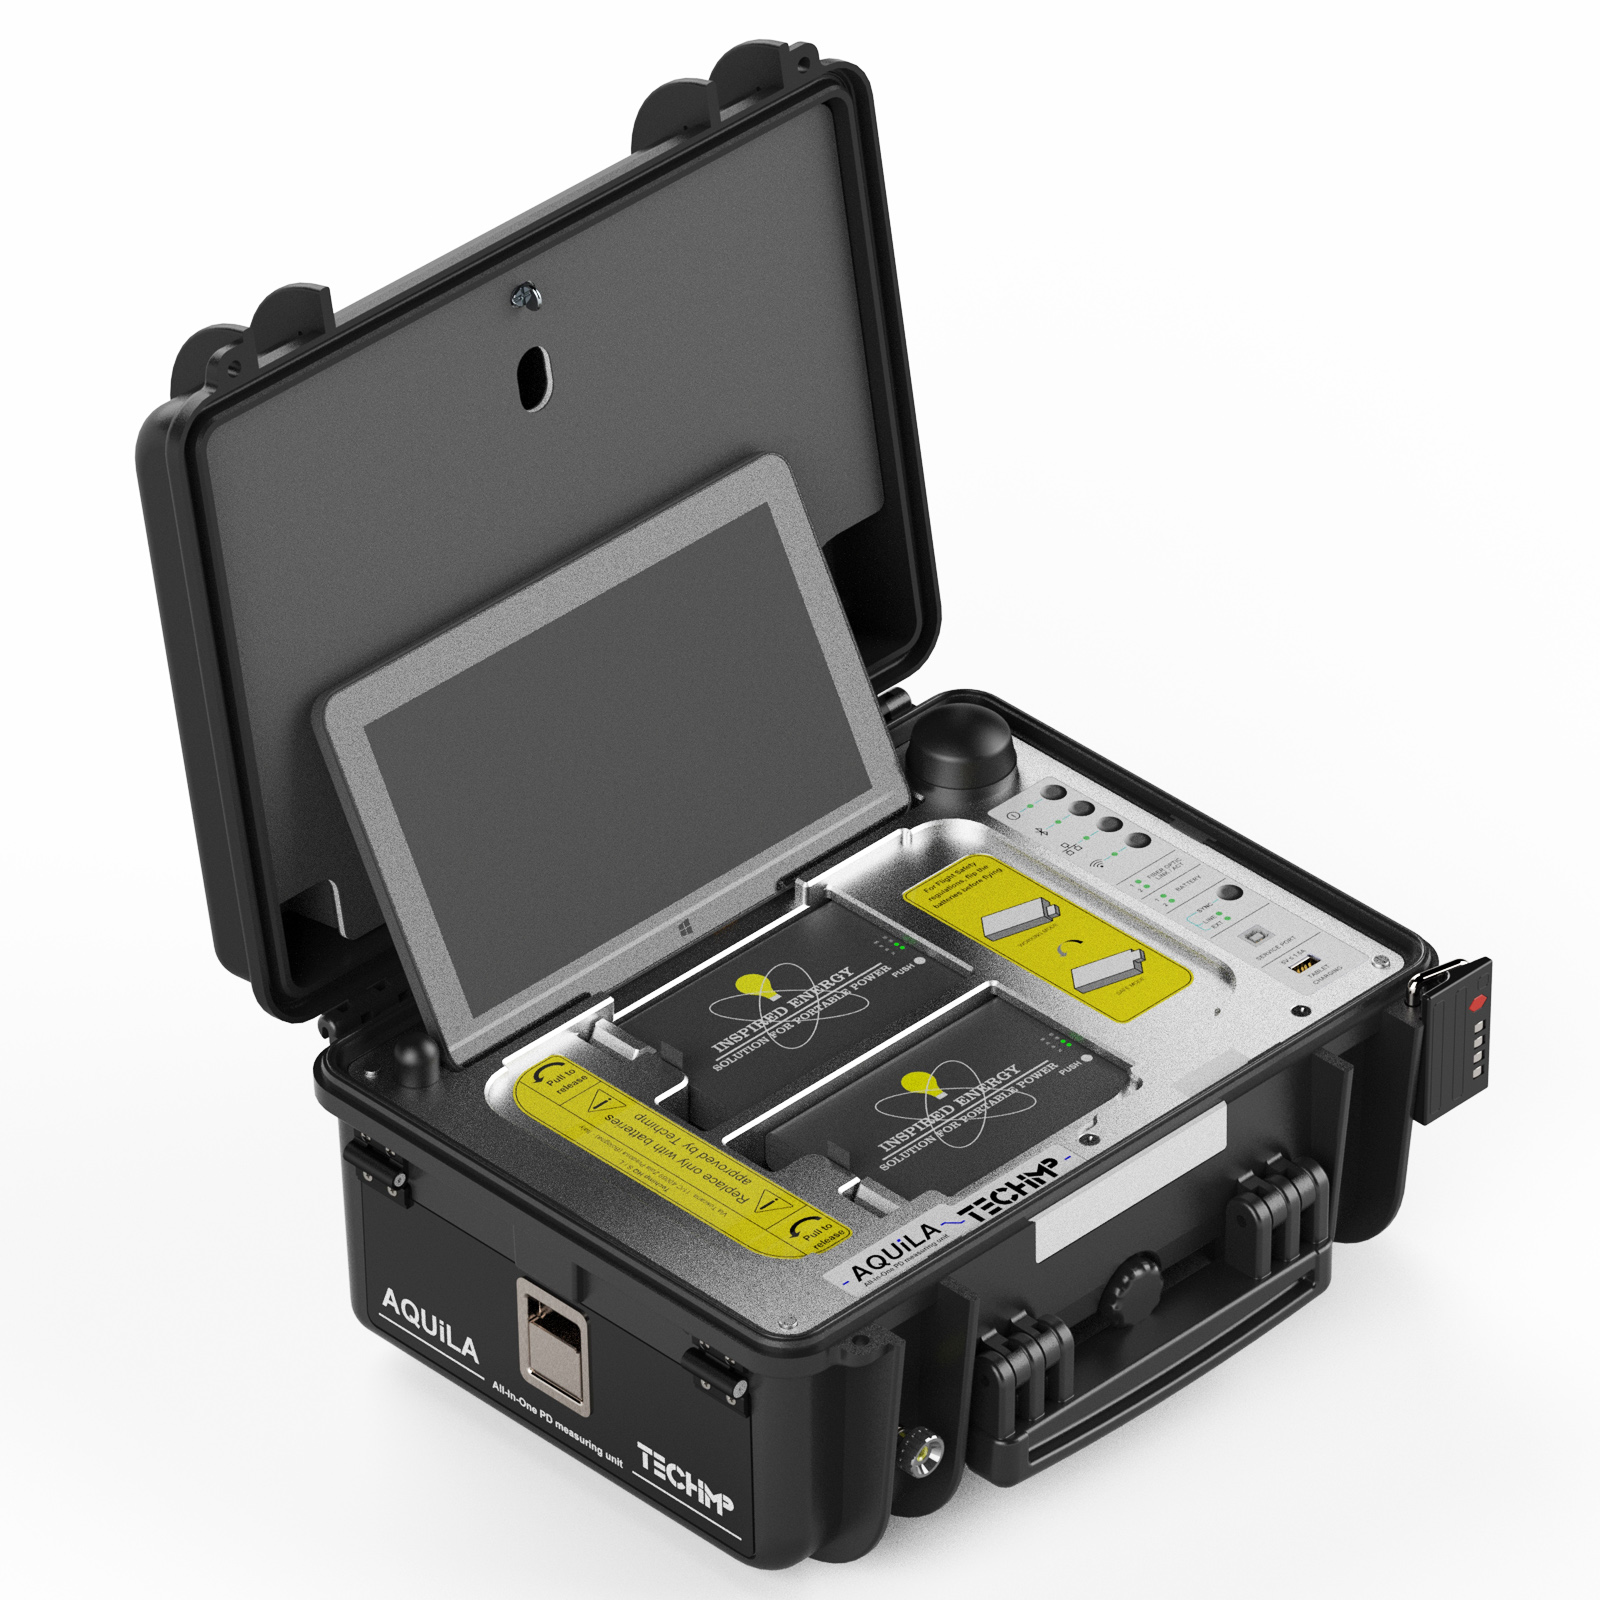 AQUILA™|Portable PD acquisition unit